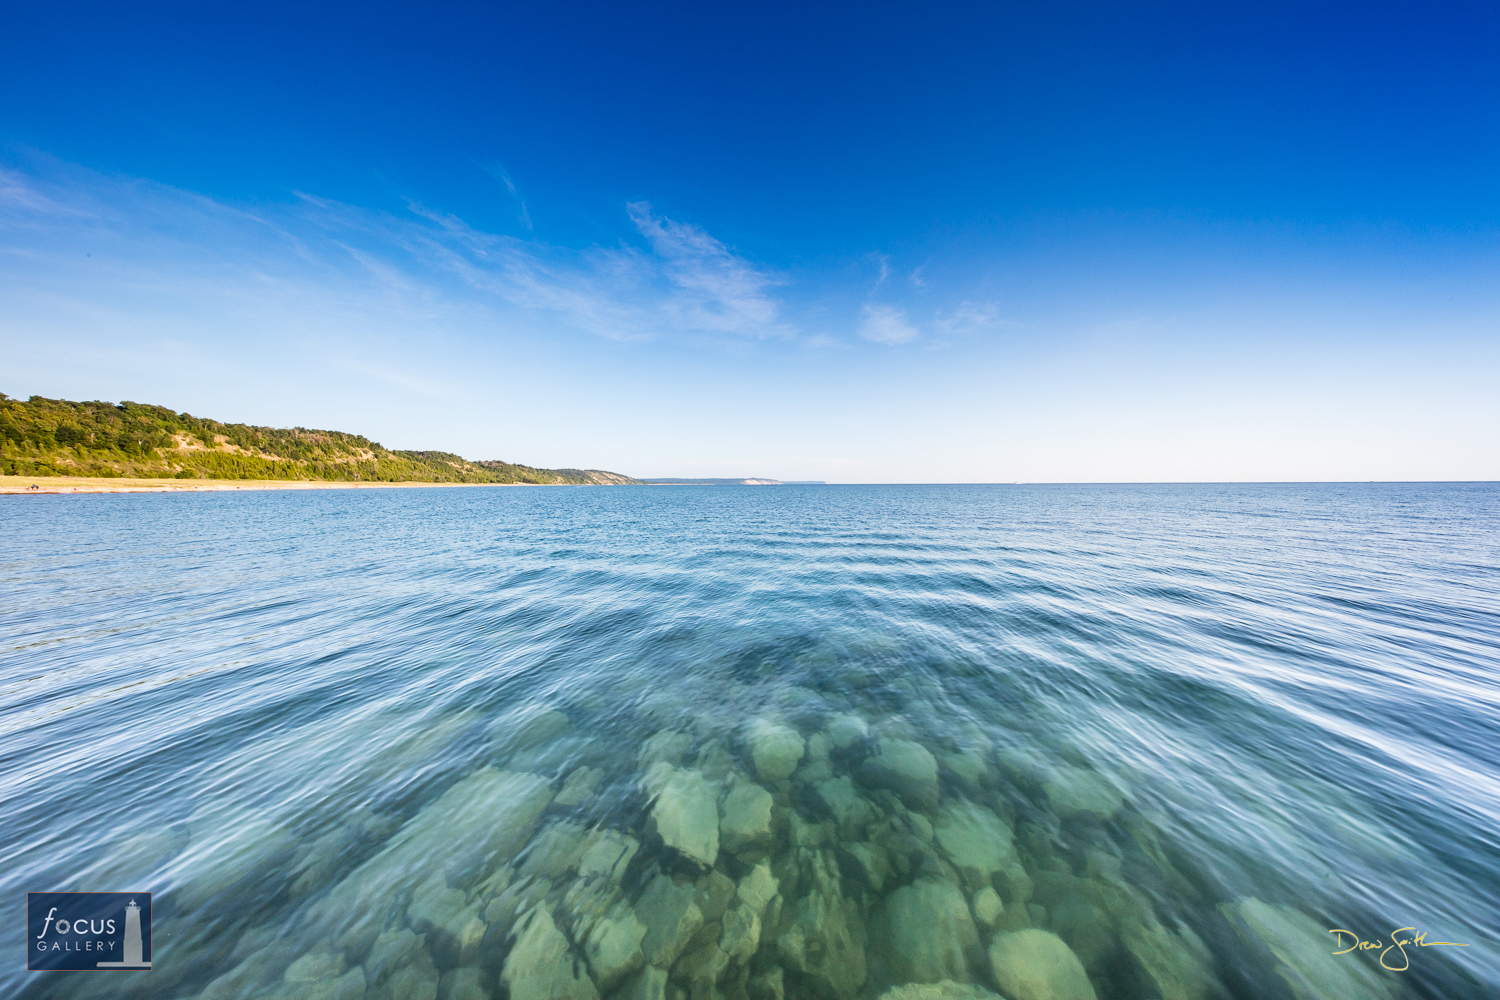 Photo © Drew Smith Looking South from the Elberta pier with a view of the rocks along the breakwater on Lake Michigan and the...